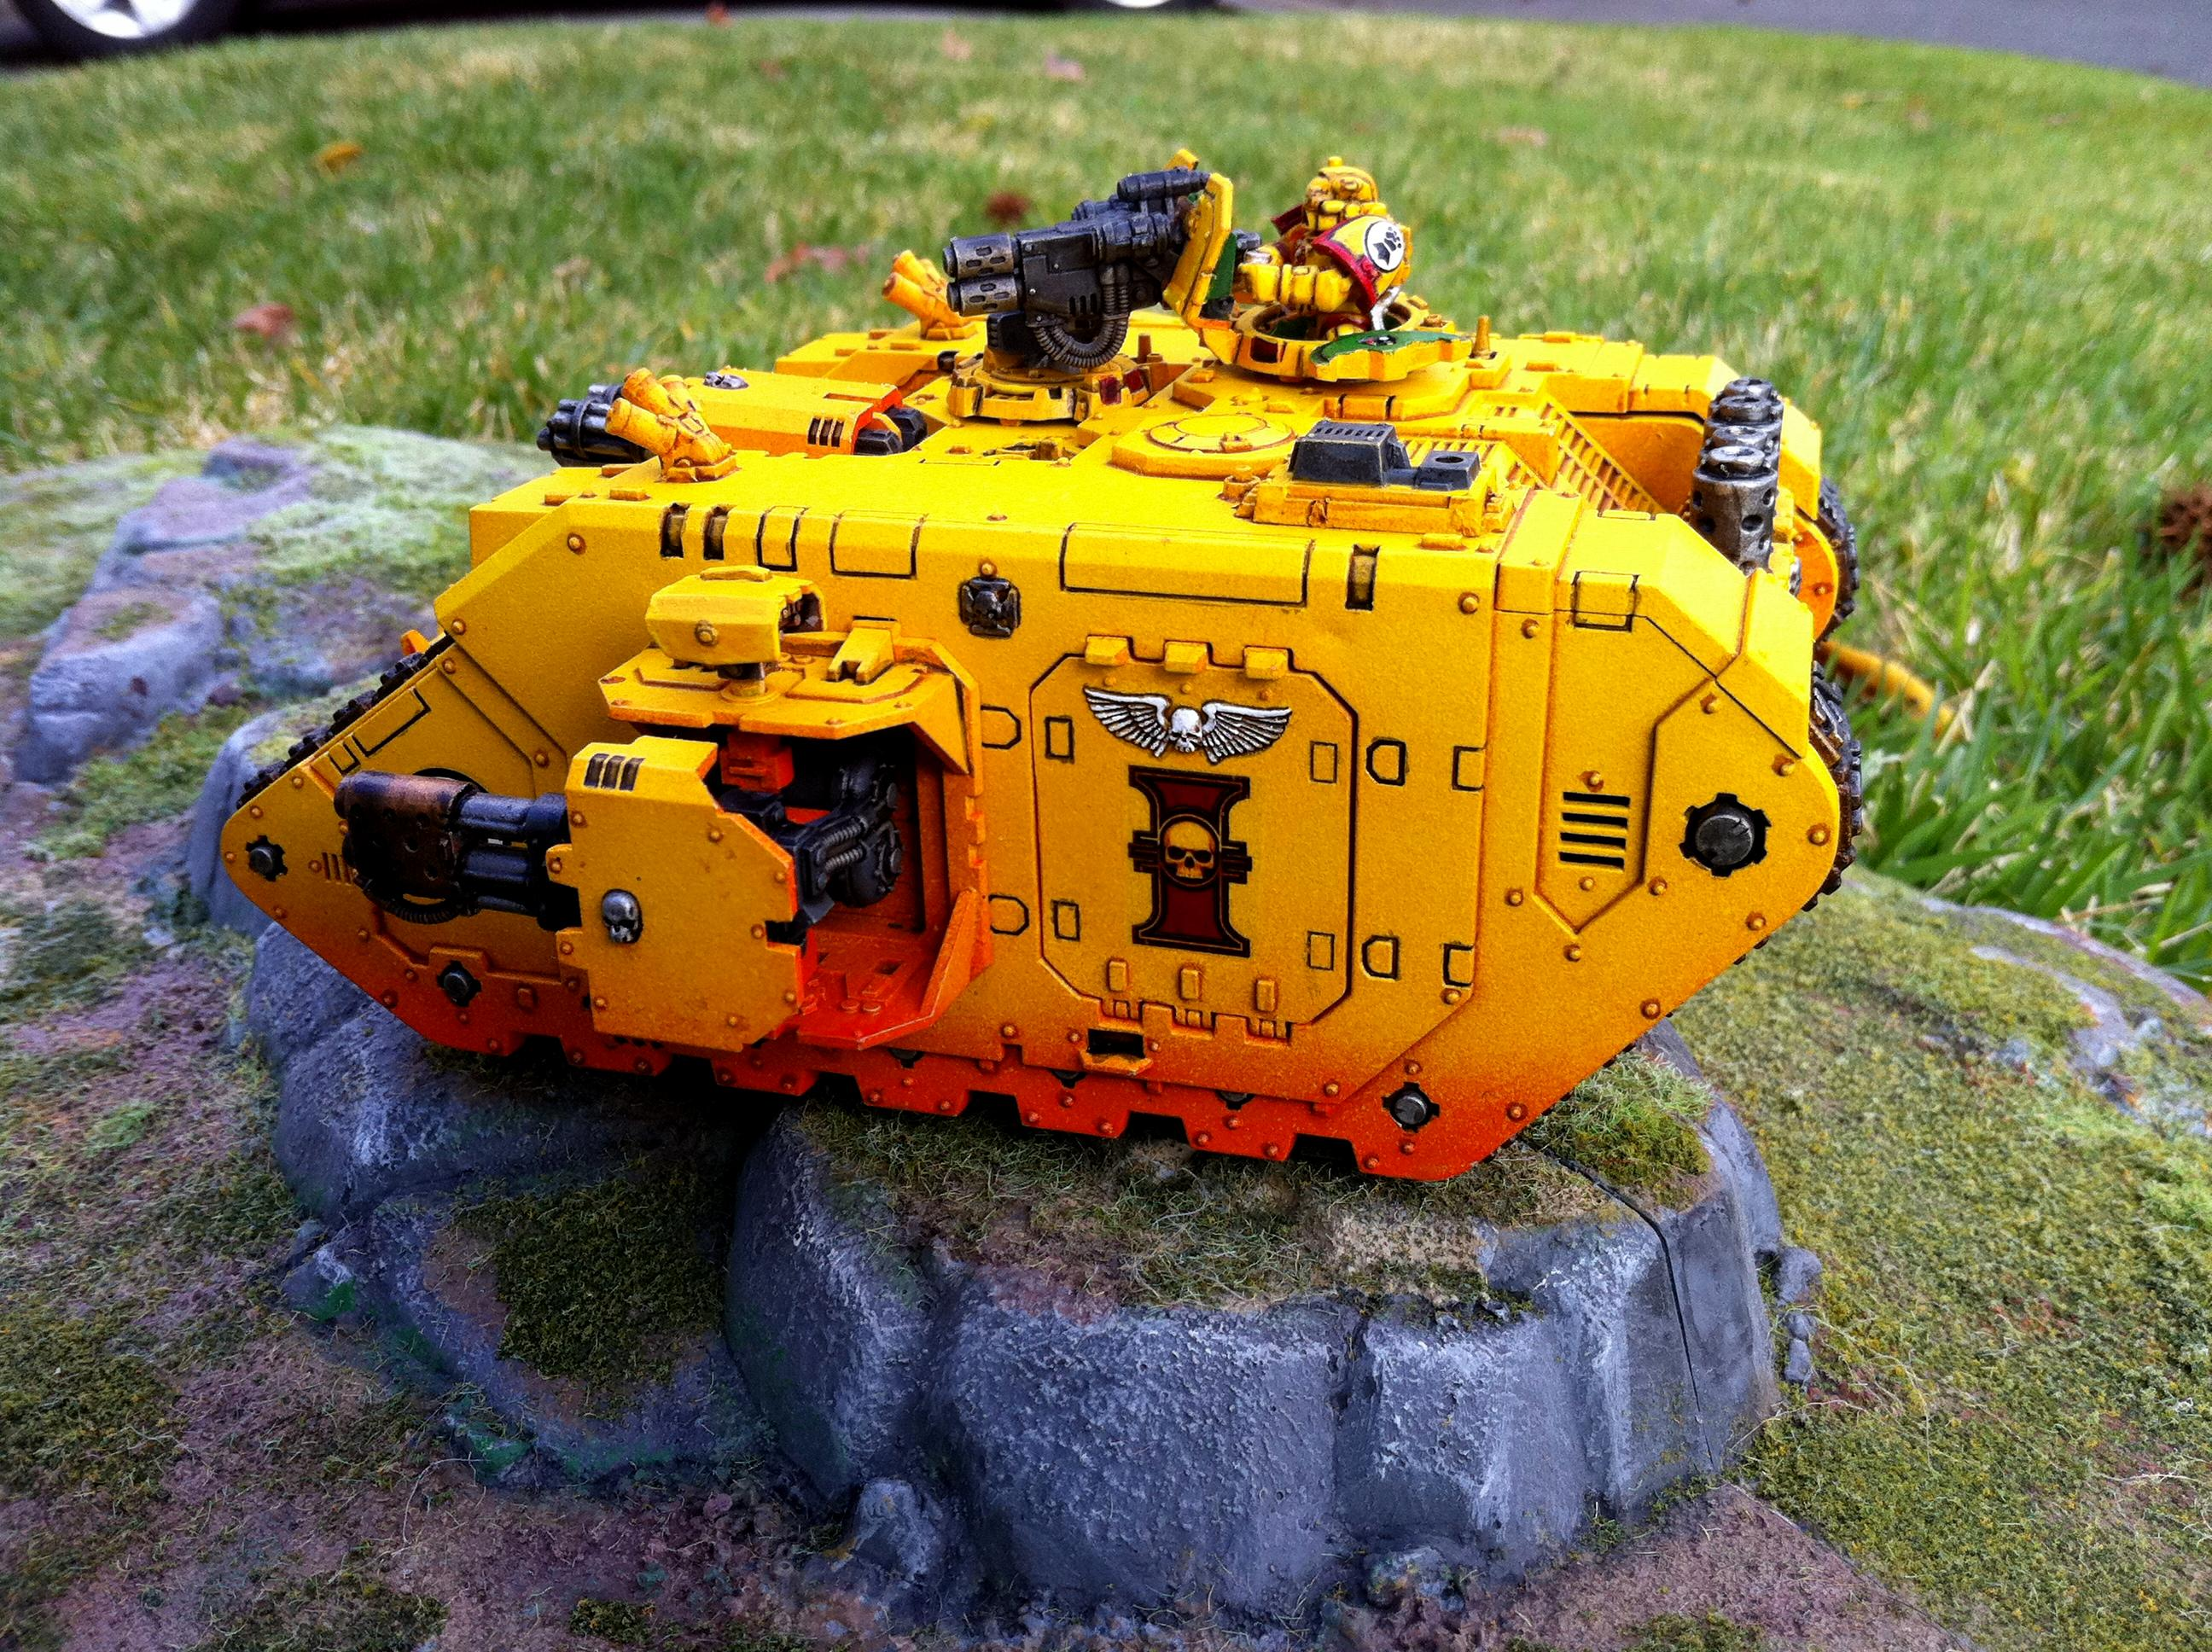 Fists, Imperial, Imperial Fists, Redeemer